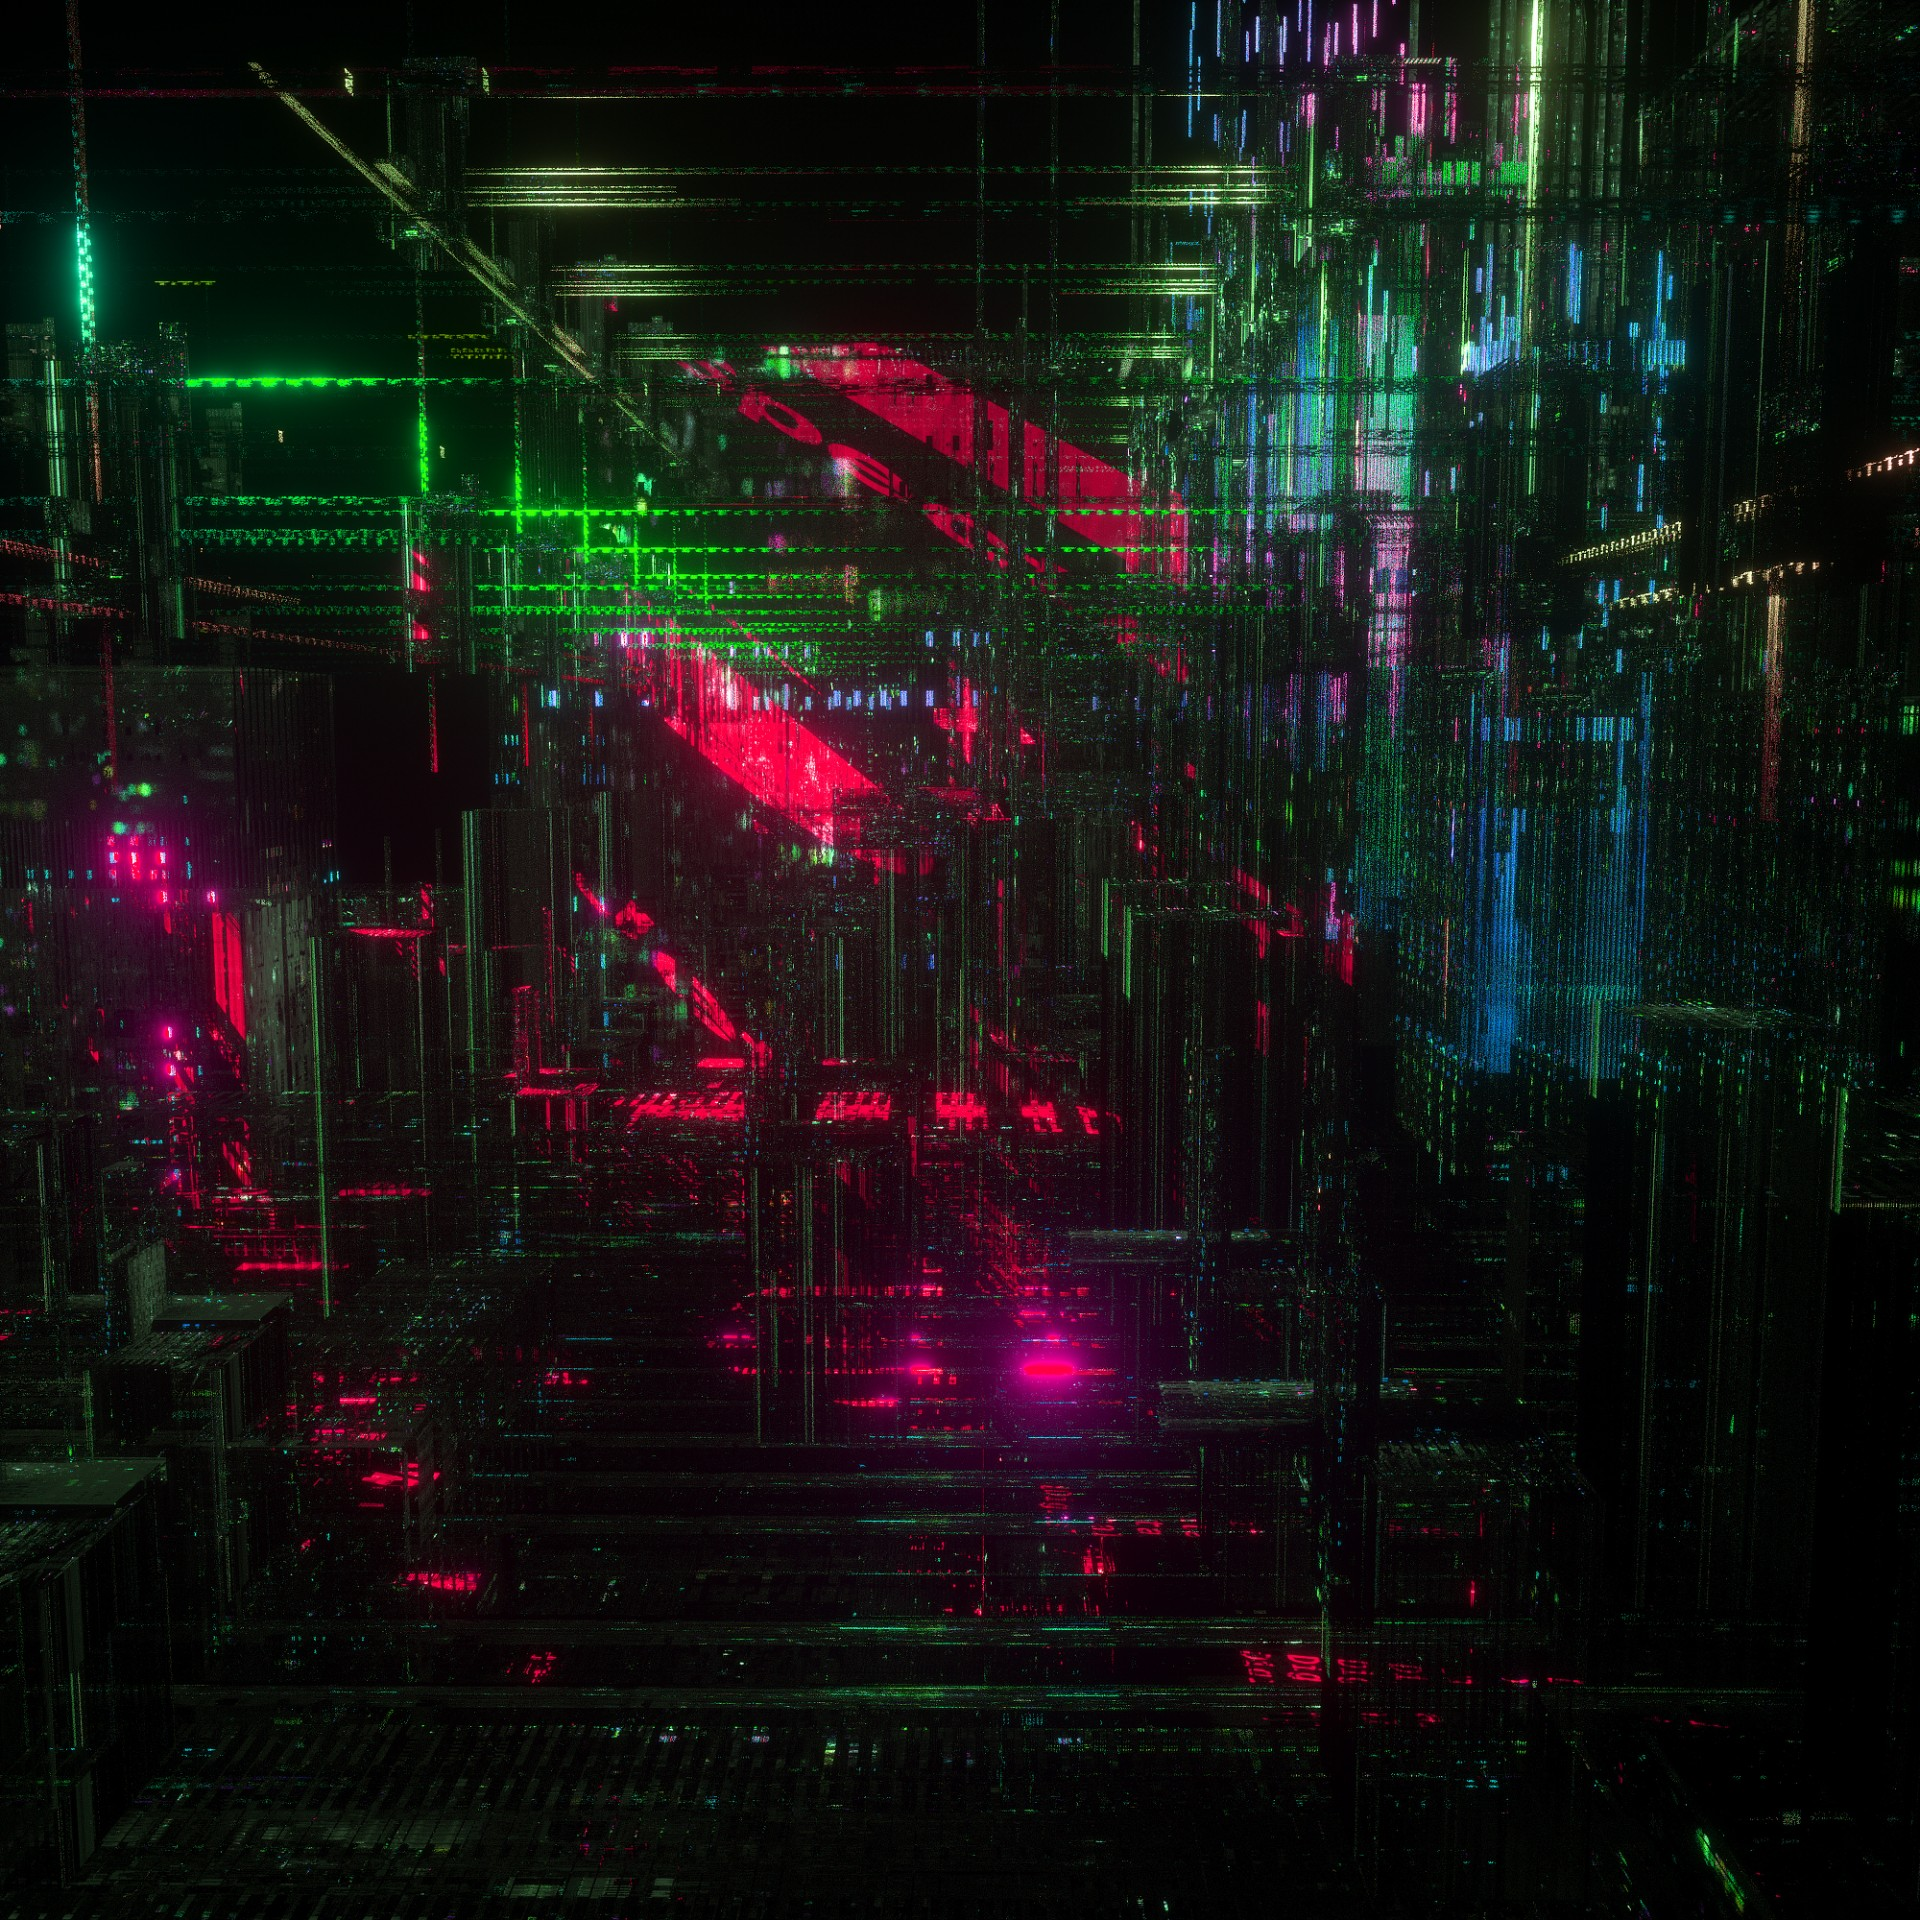 GEORG FASSWALD DIGITALISM EP ARTWORKS